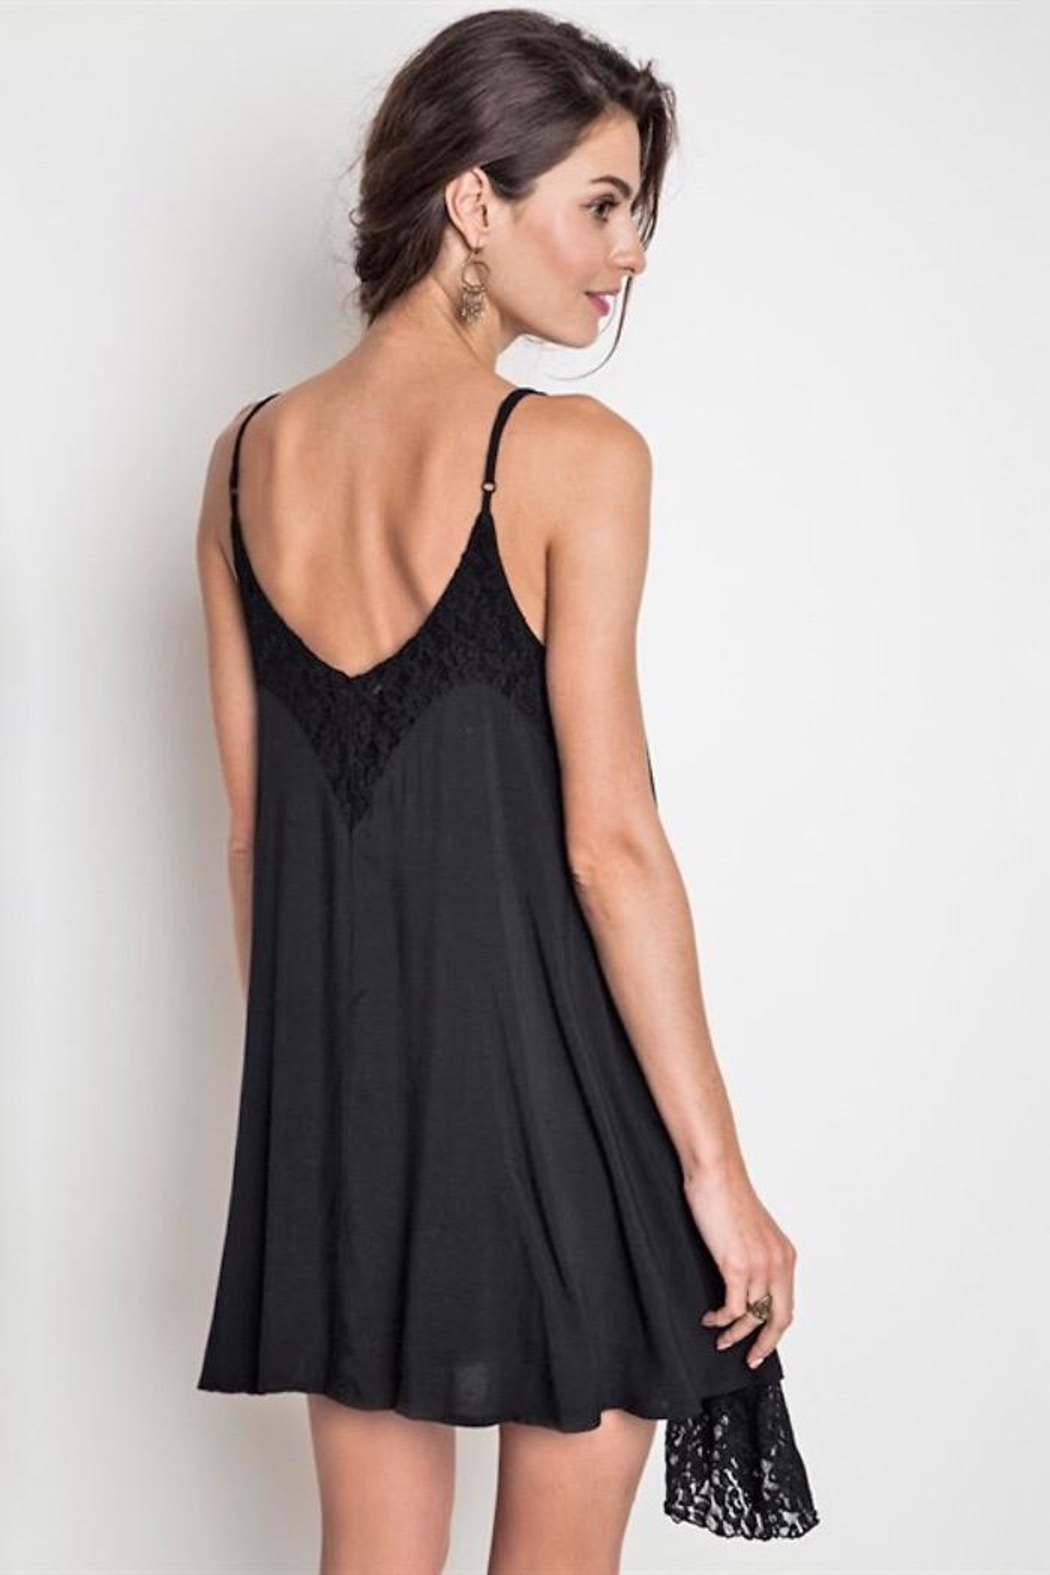 People Outfitter Black Lace Dress - Side Cropped Image